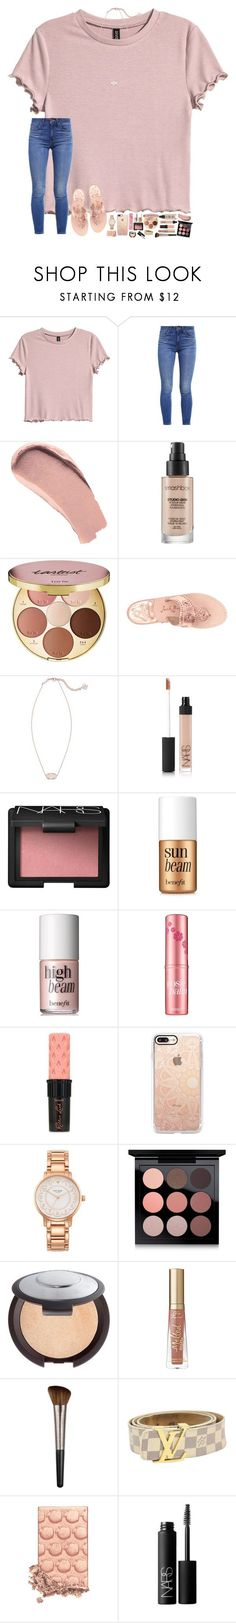 """happy valentines day 💓"" by hopemarlee ❤ liked on Polyvore featuring H&M, Levi's, Burberry, Smashbox, tarte, Jack Rogers, Kendra Scott, NARS Cosmetics, Benefit and Casetify"